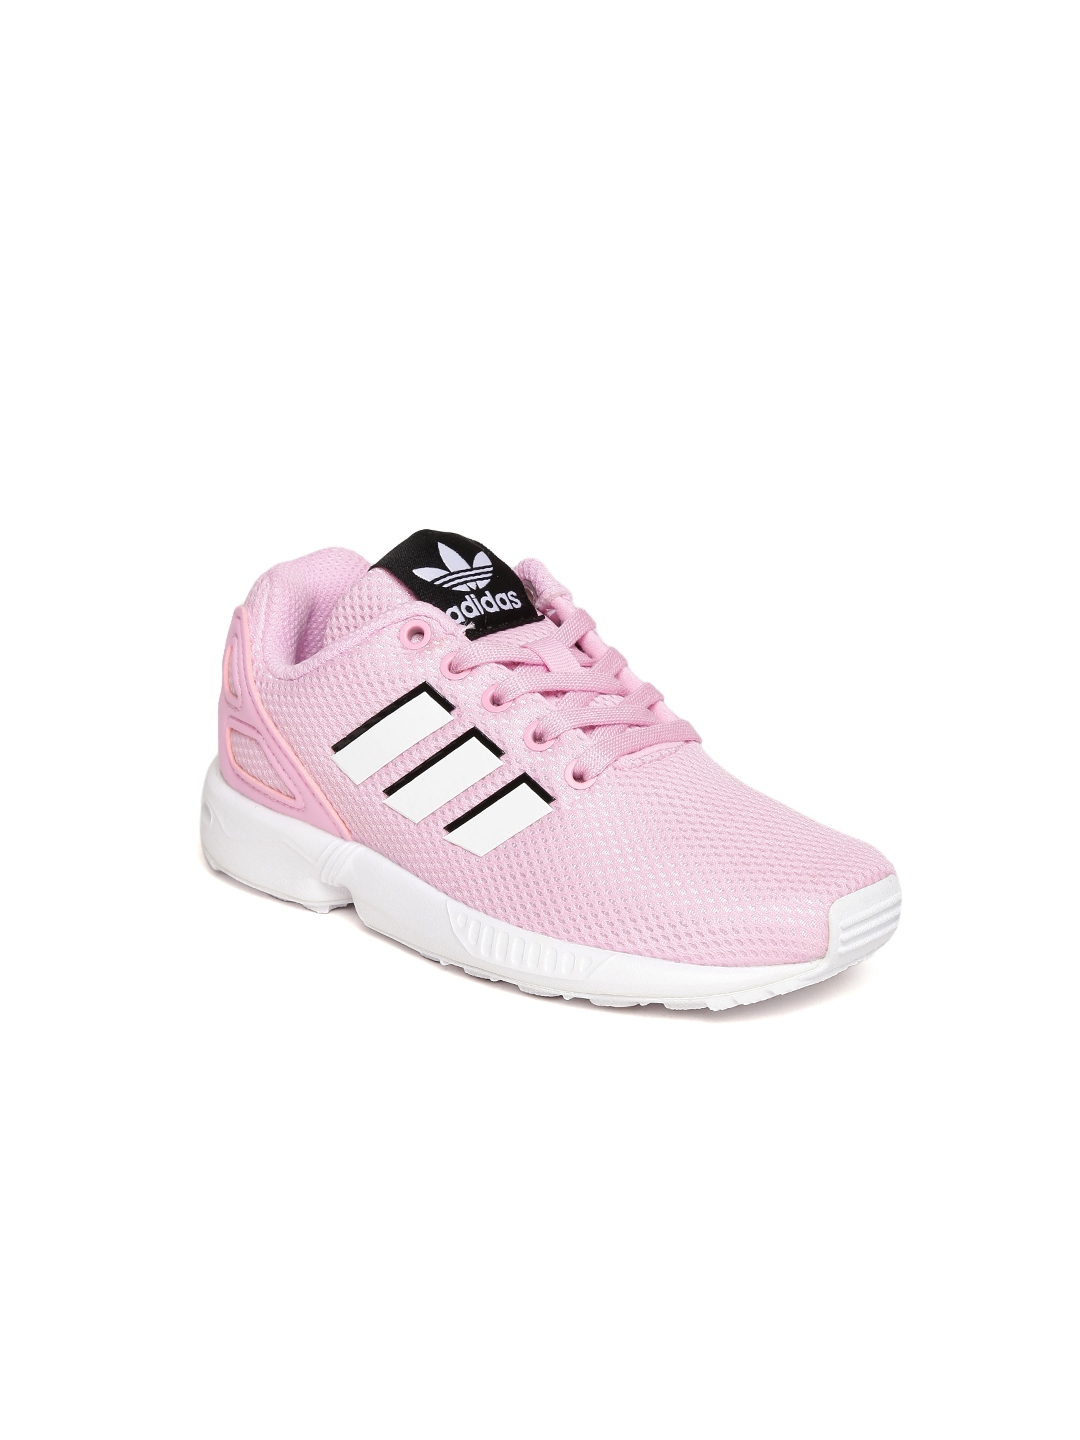 6d6826cfe5492 Buy ADIDAS Originals Kids Pink ZX FLUX C Sneakers - Casual Shoes for ...